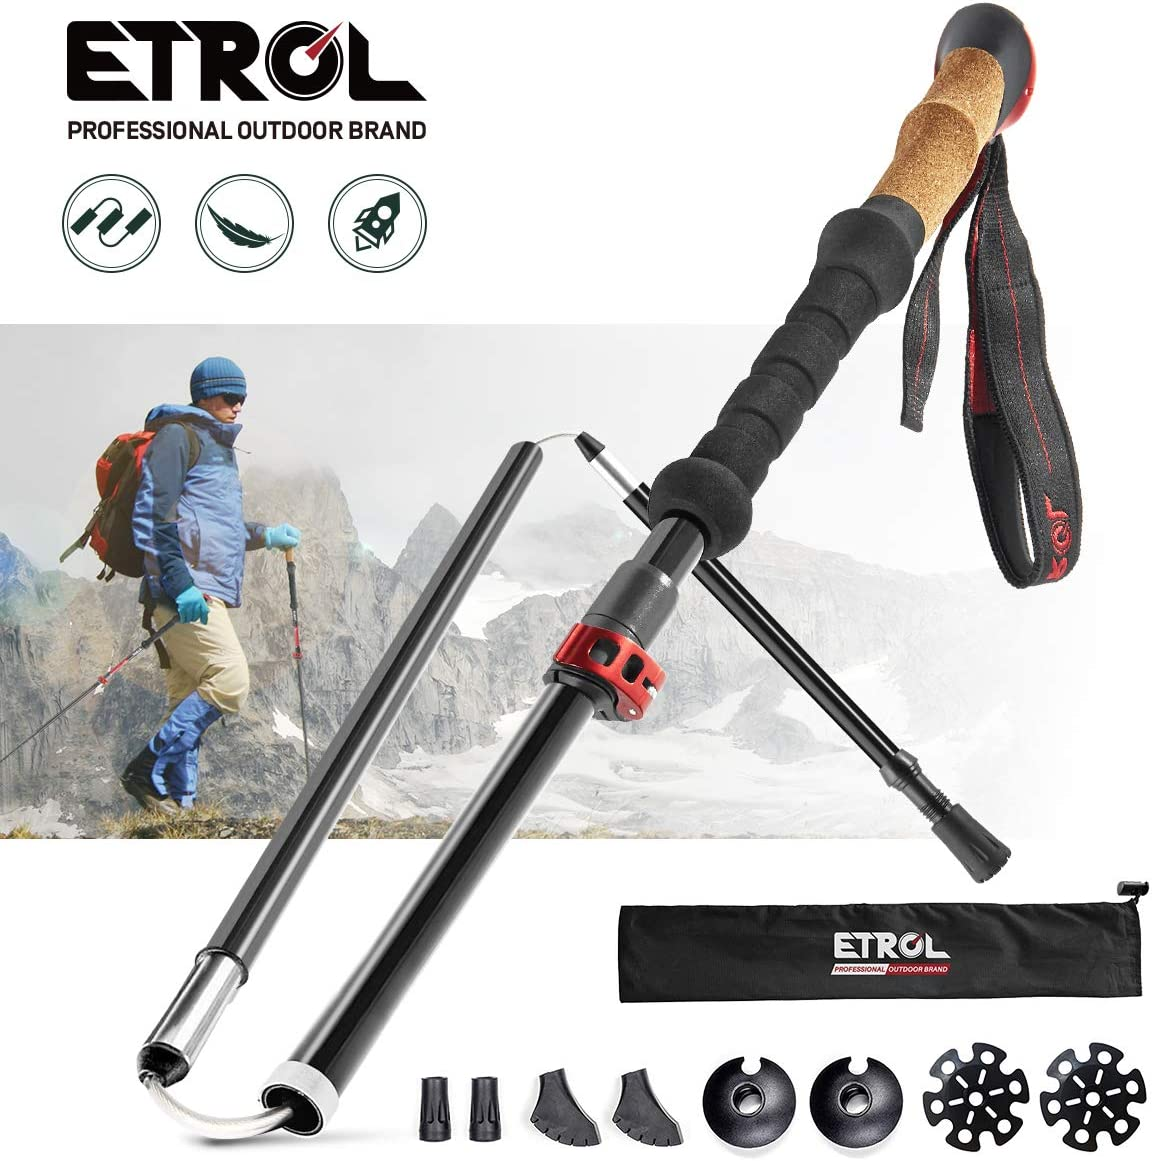 ETROL Trekking Poles-Adjustable Walking Sticks-Collapsible, Quick Lock, Antishock-2pc Pack, Strong, Lightweight Aluminum 7075, Cork Grip, Tips, Padded Strap, Bag Hiking Poles for Men Women